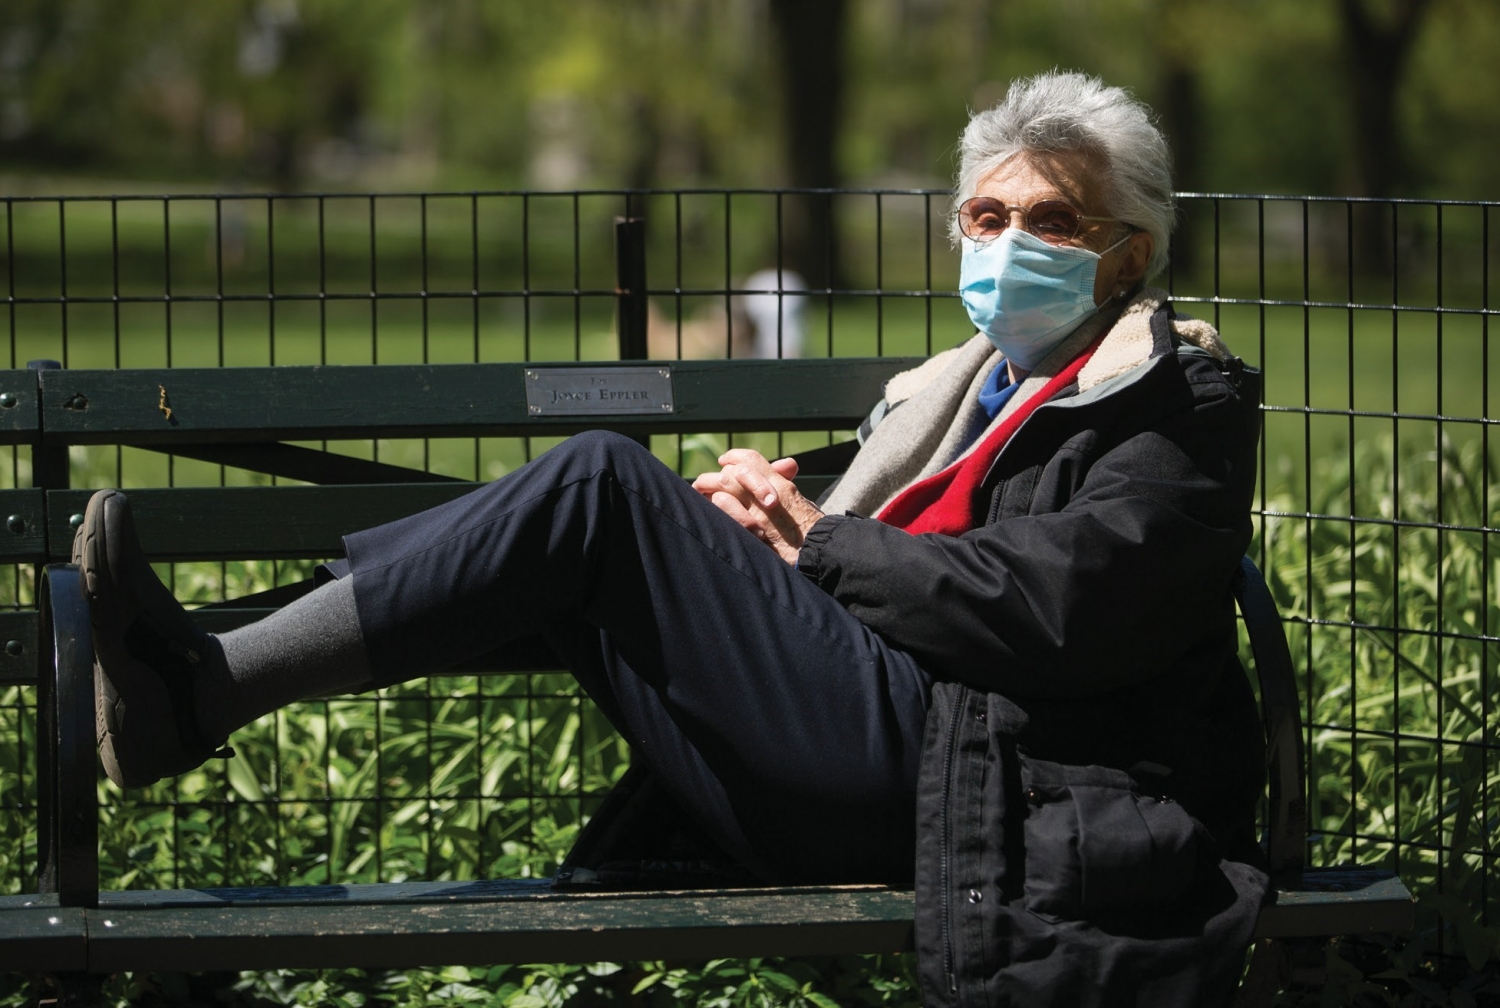 a woman on a bench wearing a face mask